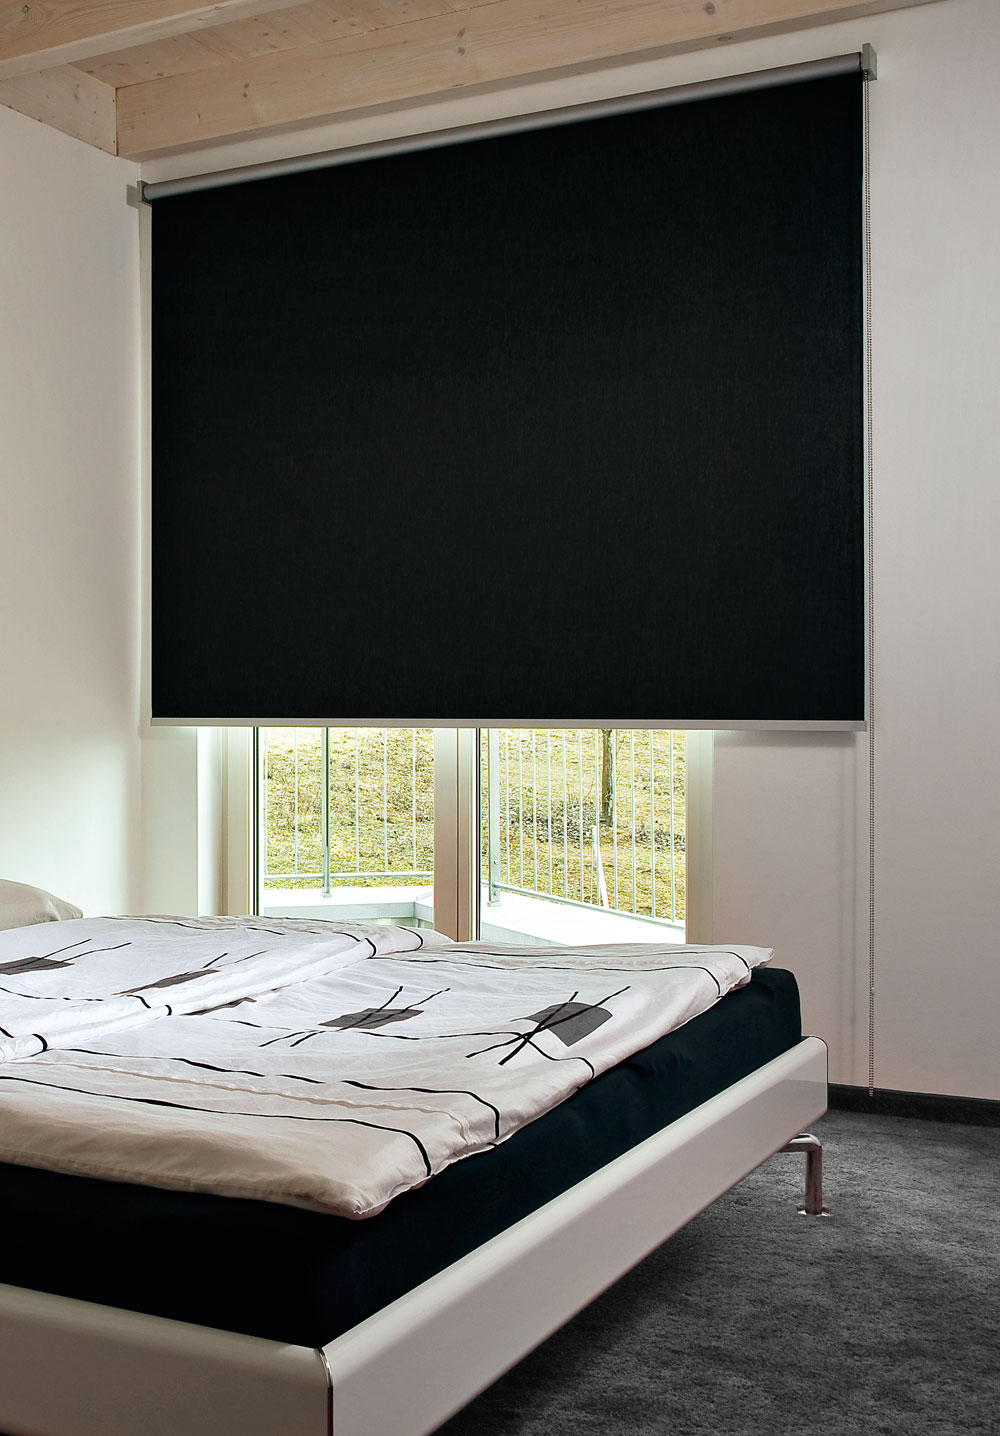 clauss markisen projekt gmbh basic mit abdeckung. Black Bedroom Furniture Sets. Home Design Ideas